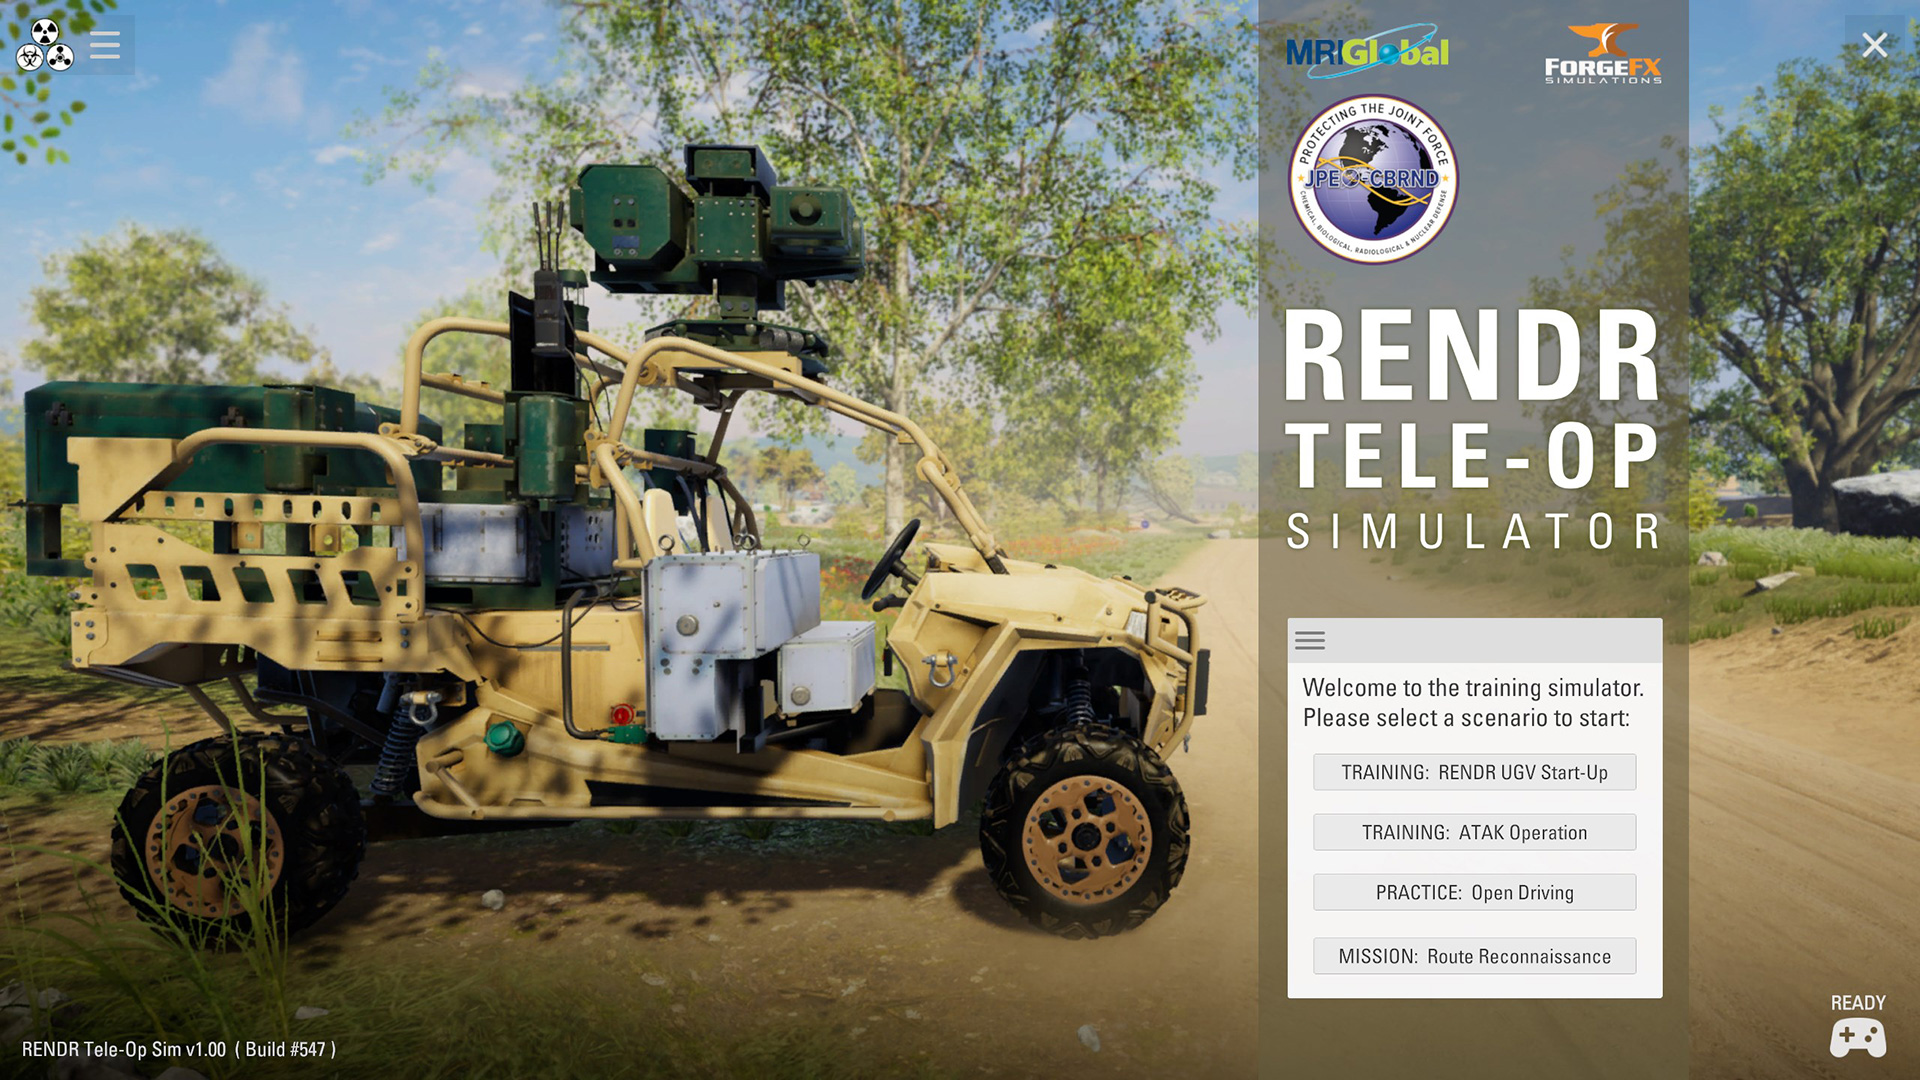 Teleoperation Training Simulator-for Unmanned Ground Vehicles